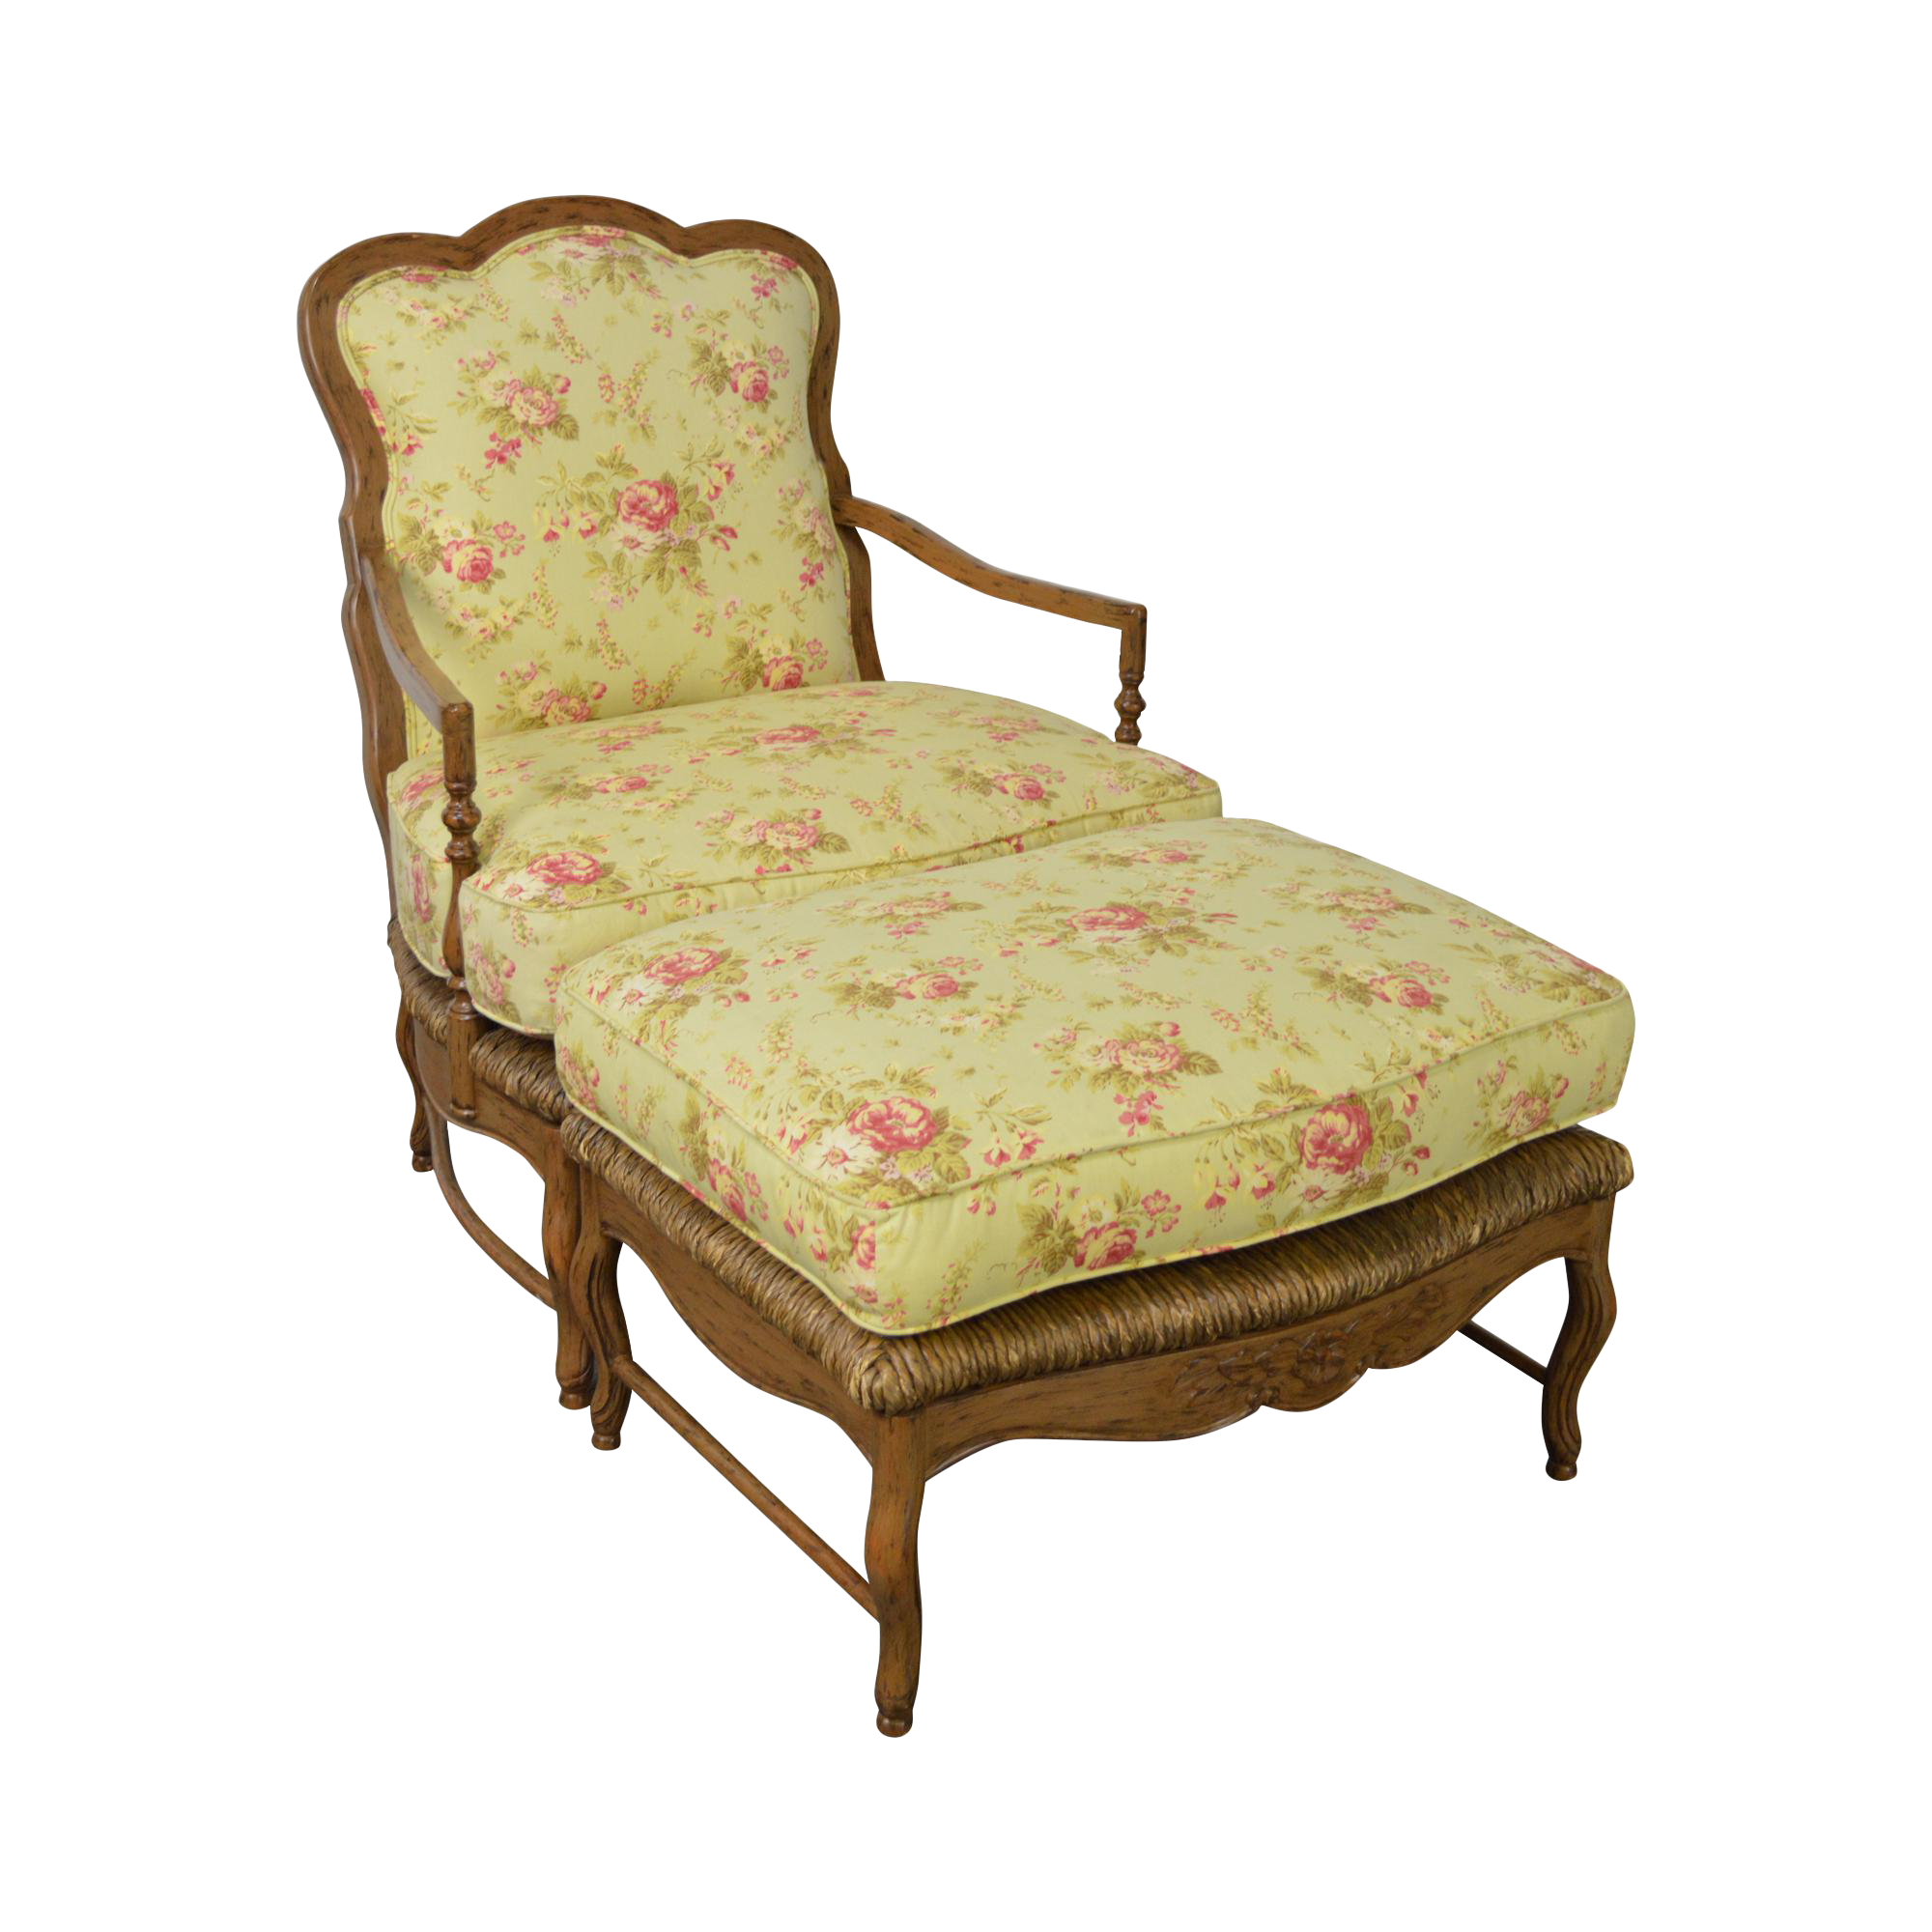 Calico Corners French Country Bergere Lounge Chair W